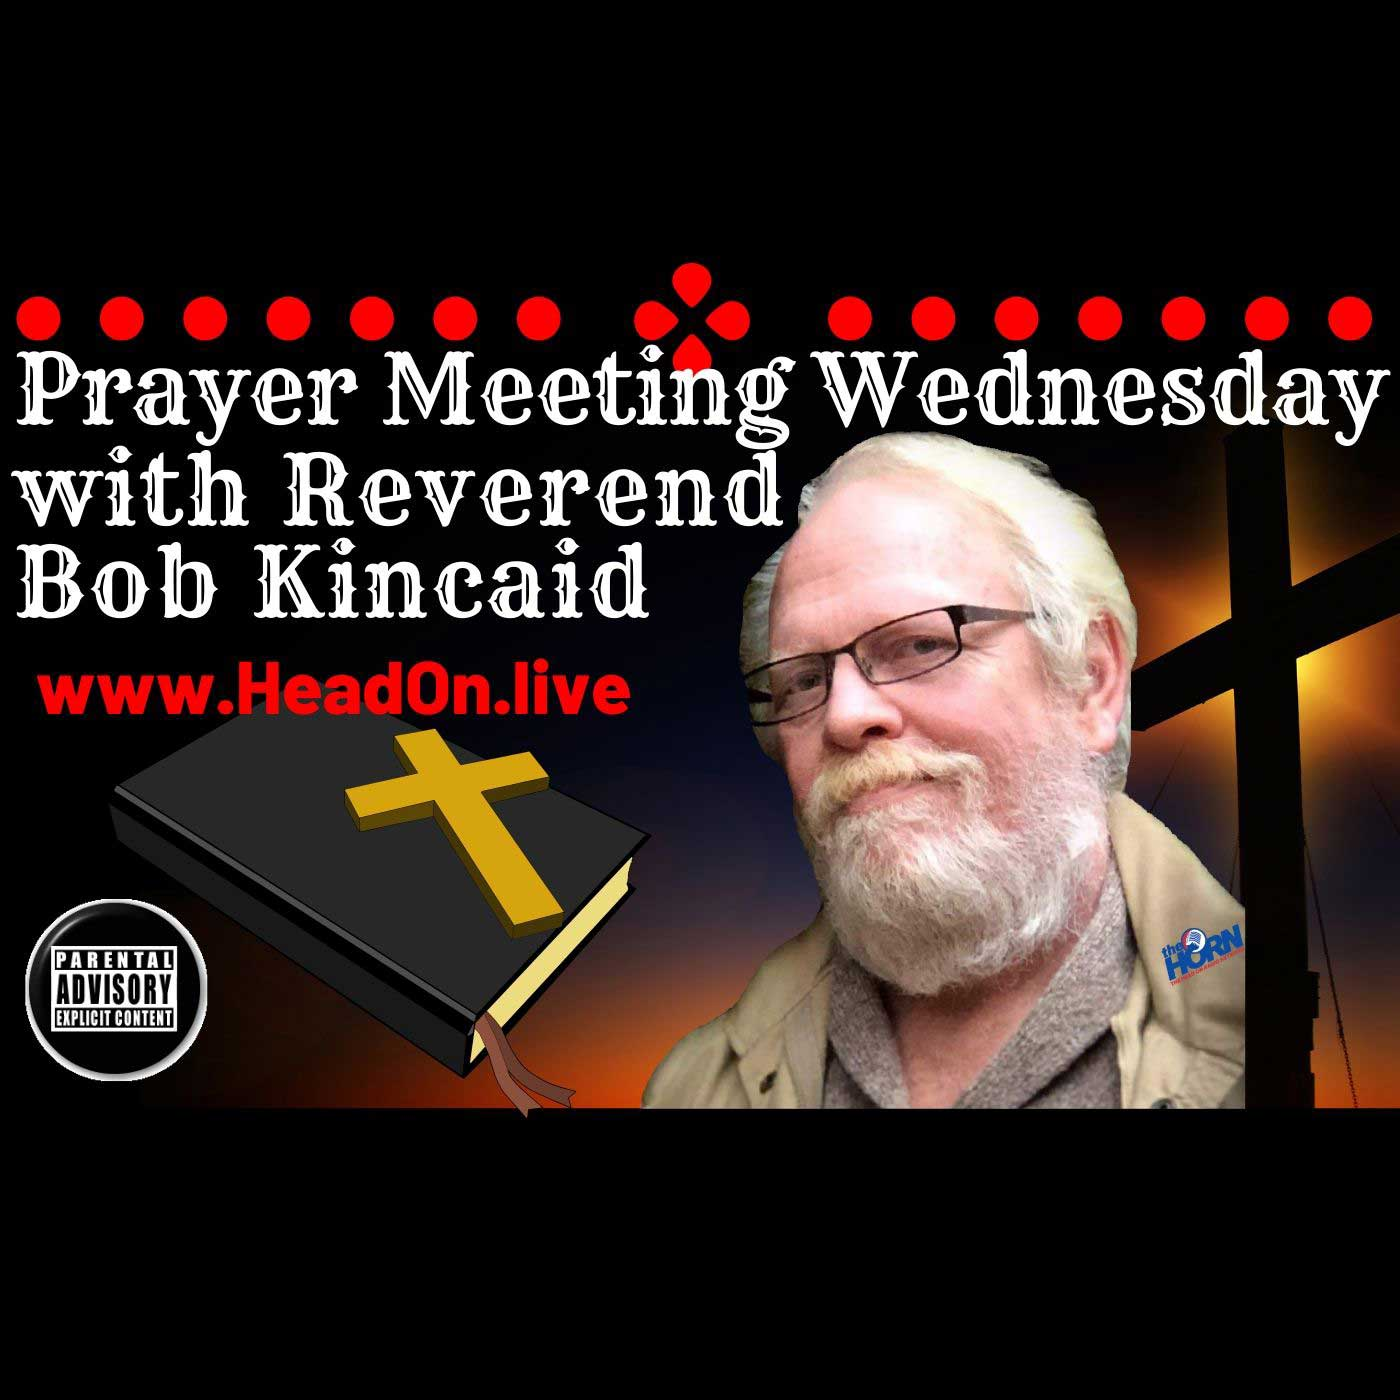 Prayrona Meetin' Wednesday, Head-ON With Bob Kincaid, 27 May 2020